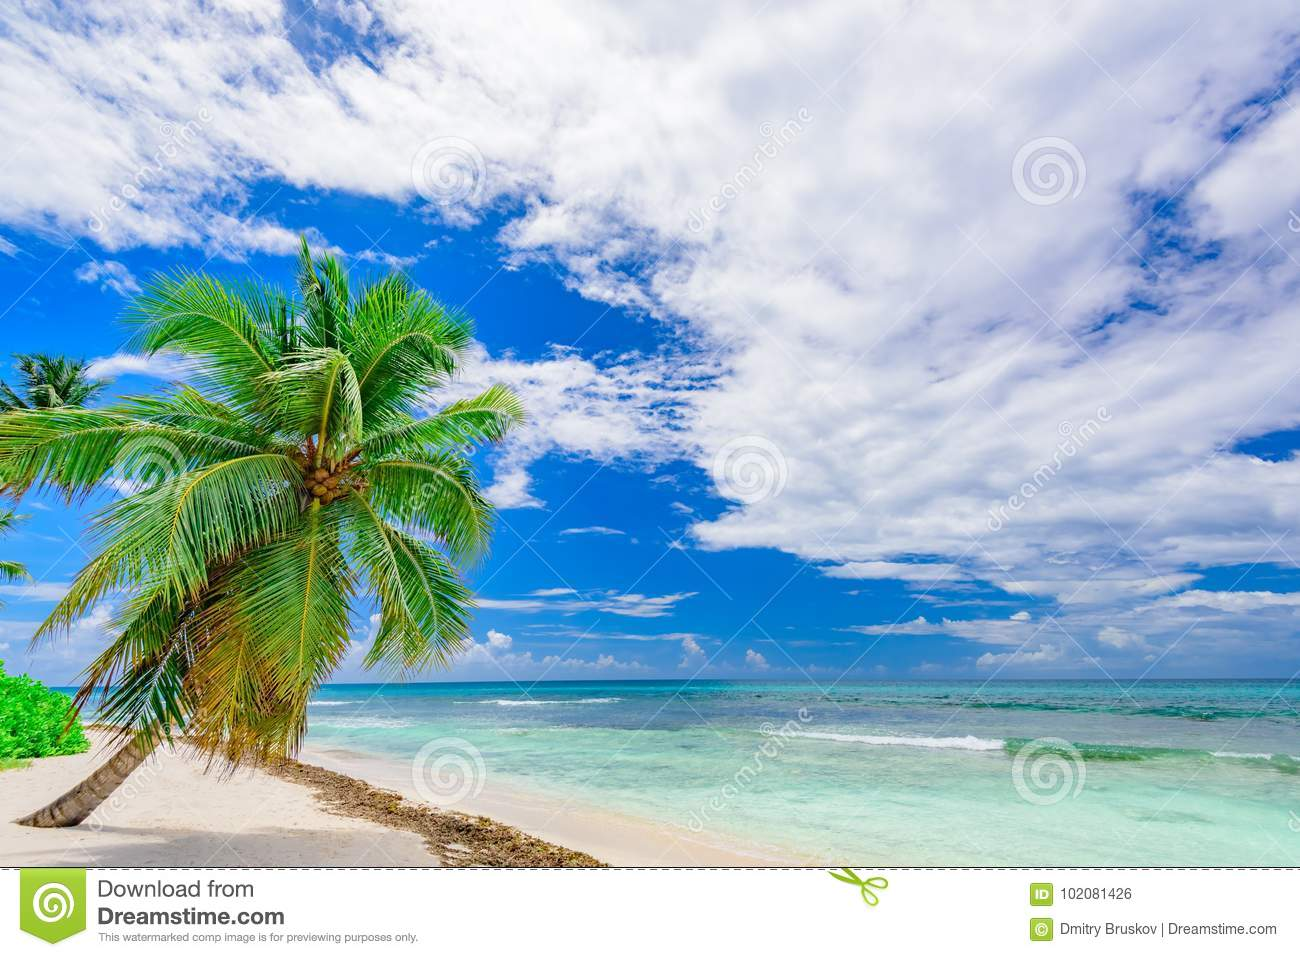 Download Paradise Tropical Beach Palm The Caribbean Sea Stock Photo - Image of relax, nextraordinary: 102081426